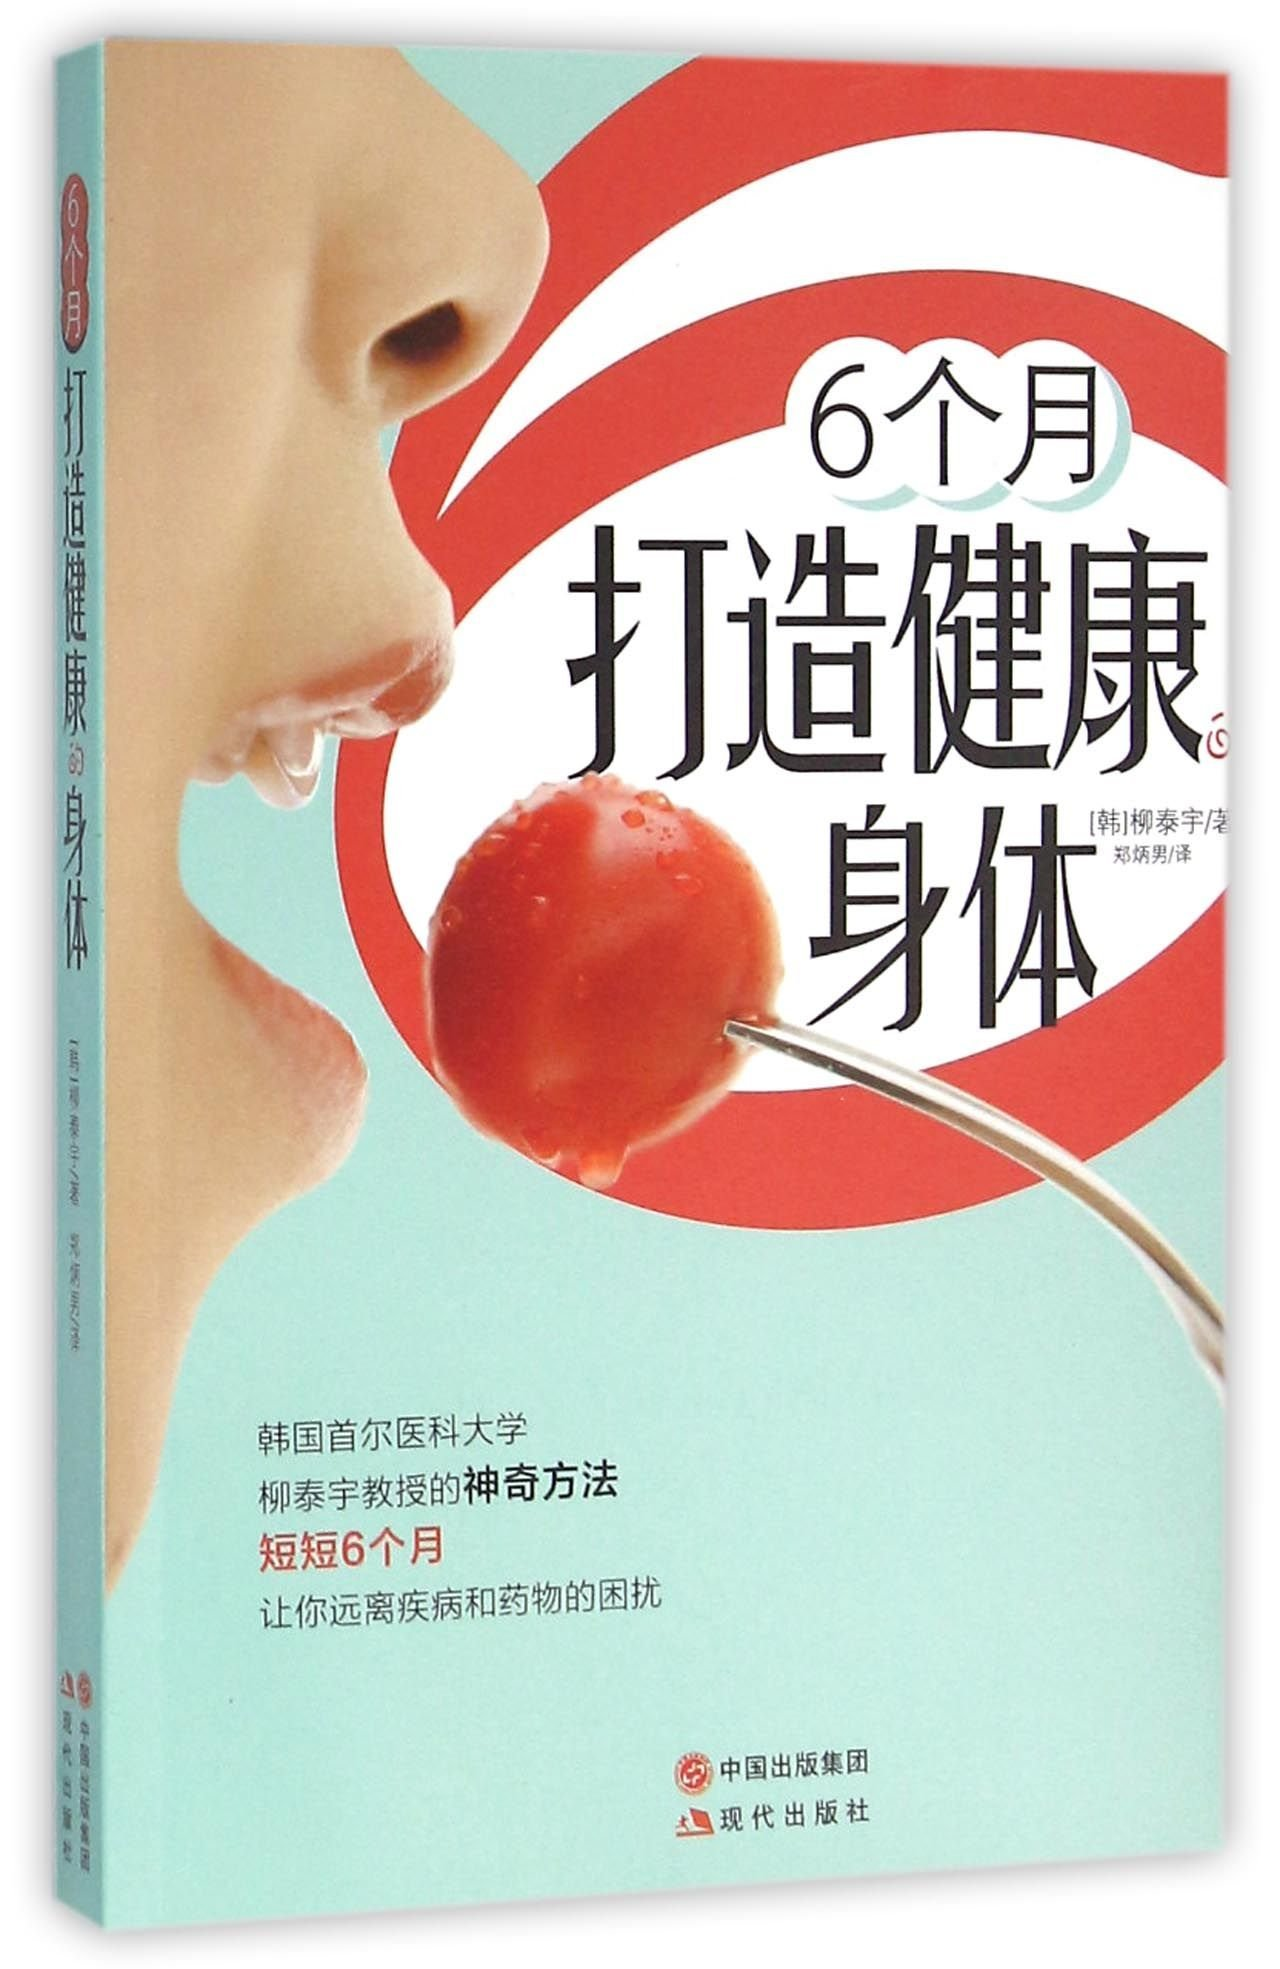 Download Build a Healthy Body within 6 Months (Chinese Edition) ebook